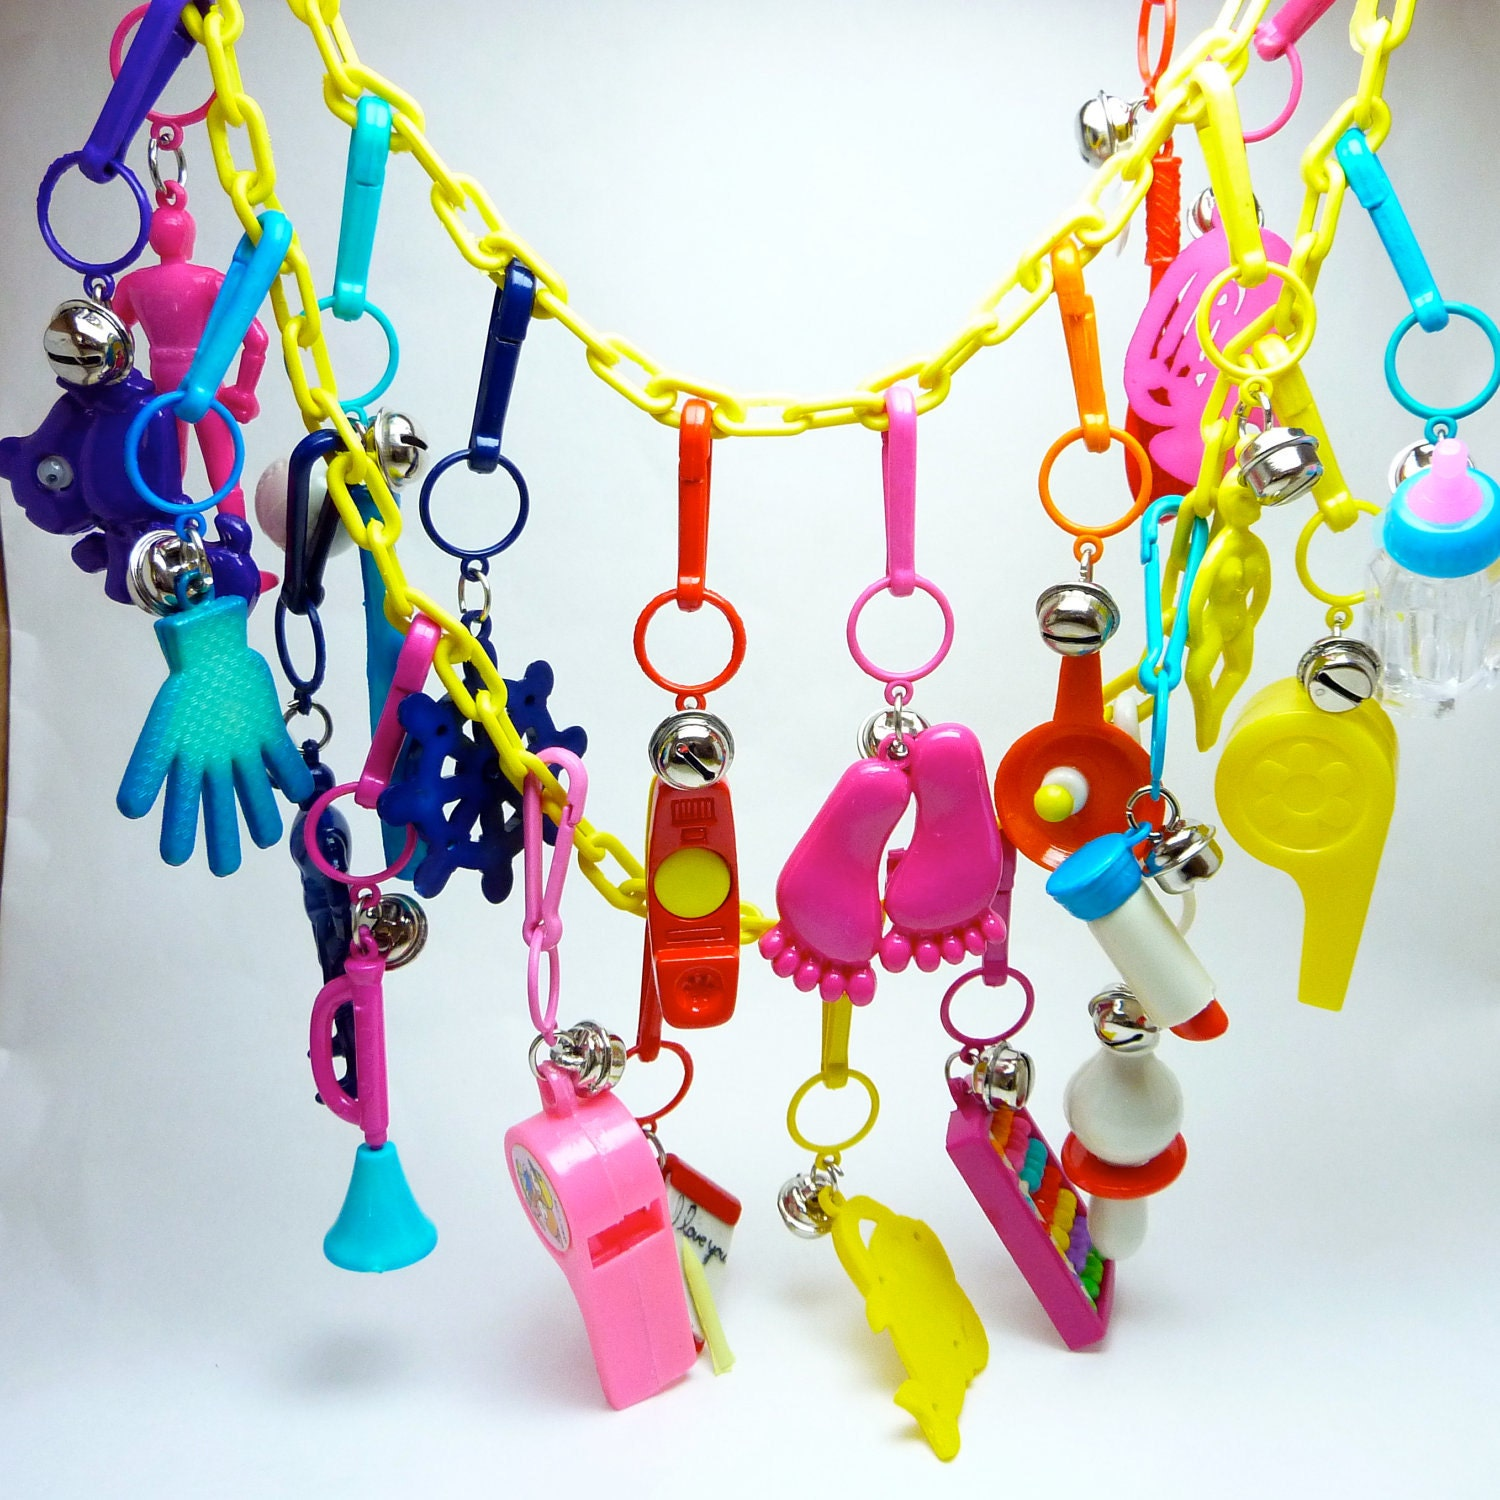 80s charm bracelet vintage 1980s plastic bell charm necklace with 21 charms 5992